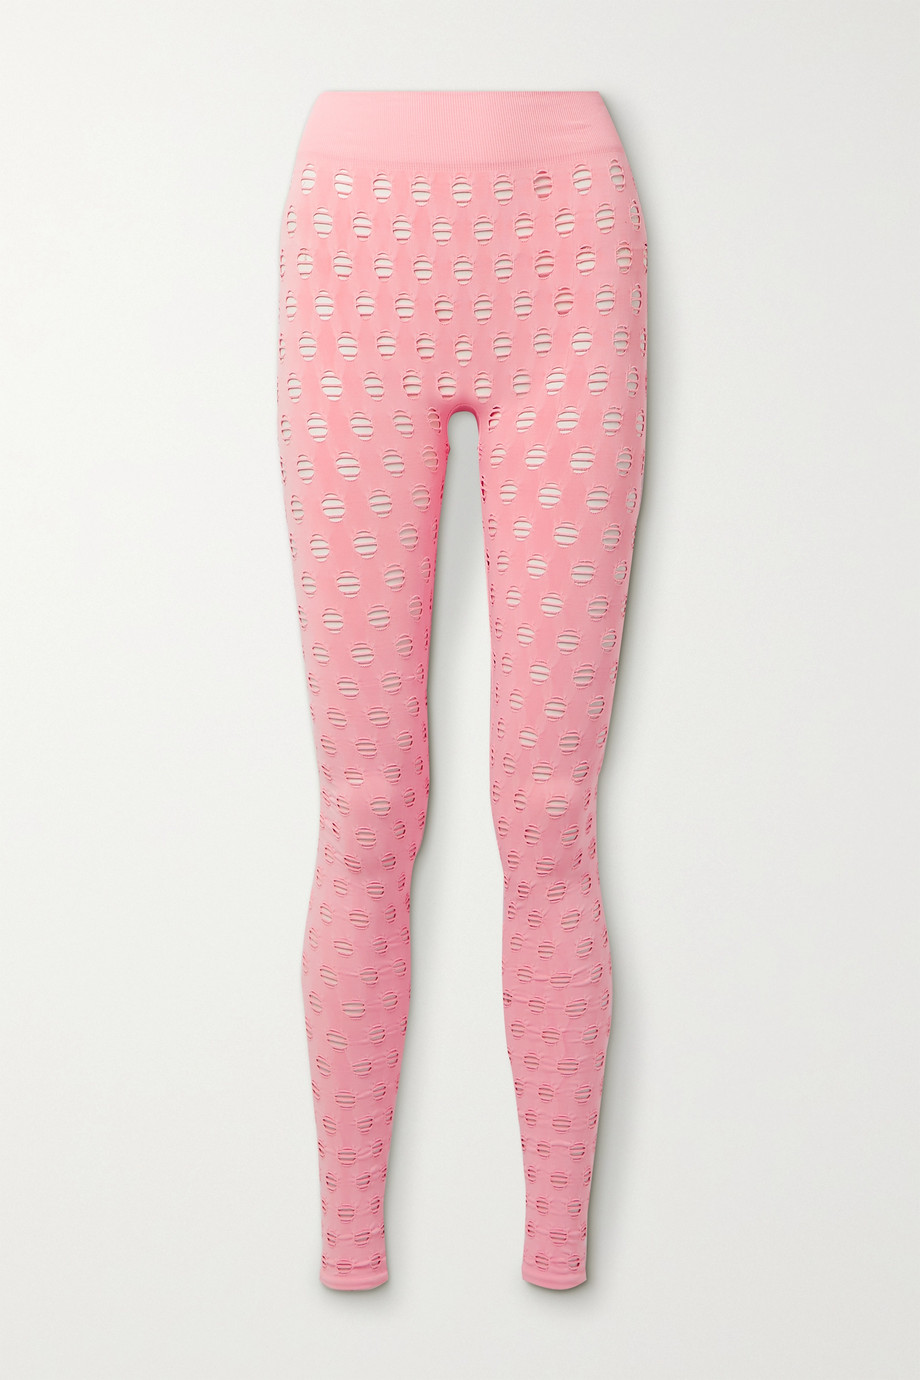 Maisie Wilen Perforated stretch-jersey leggings